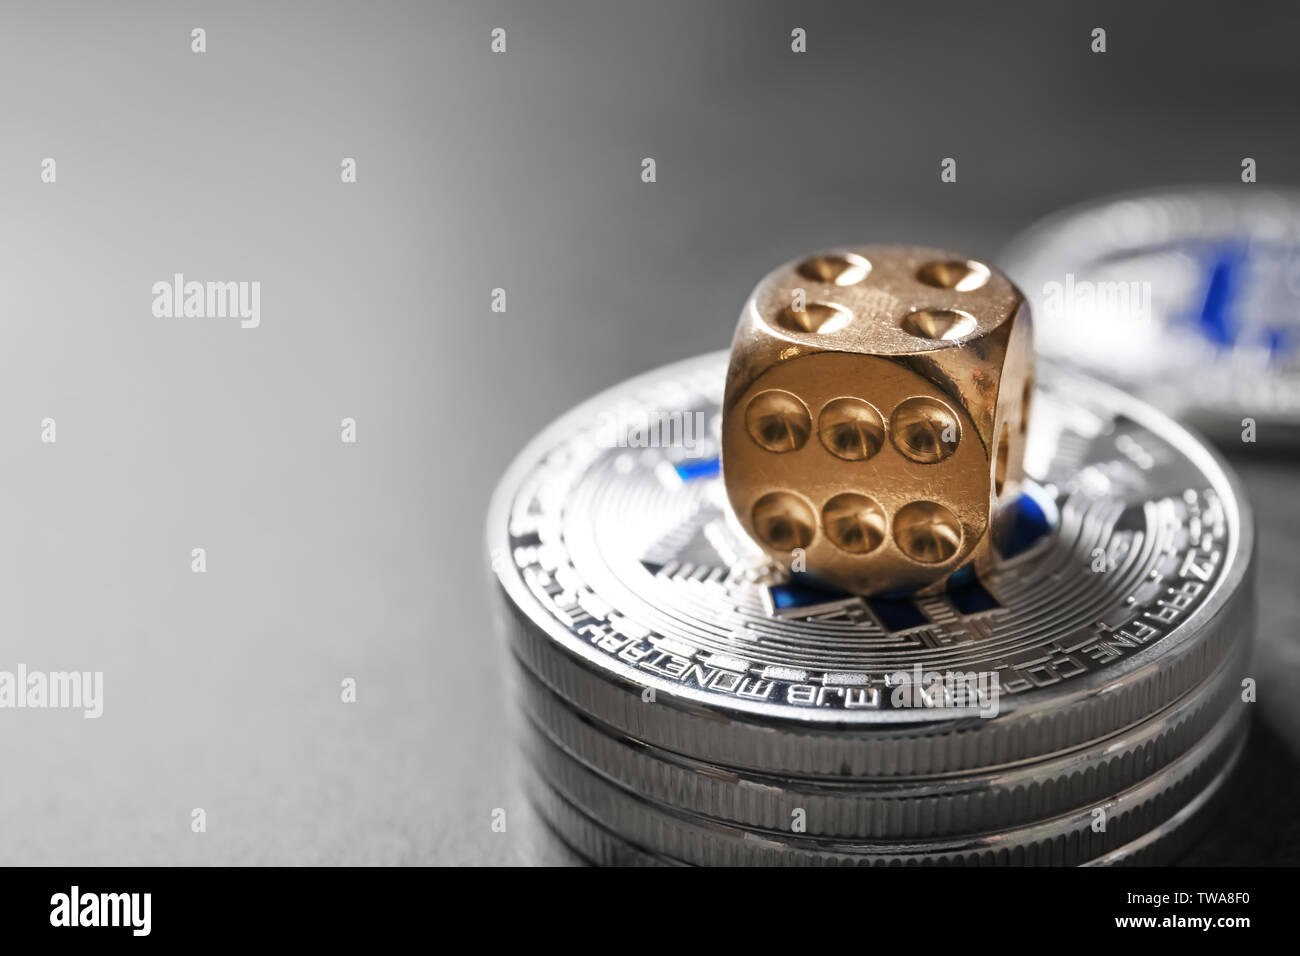 Silver bitcoins and dice on grey background. Finance trading - Stock Image